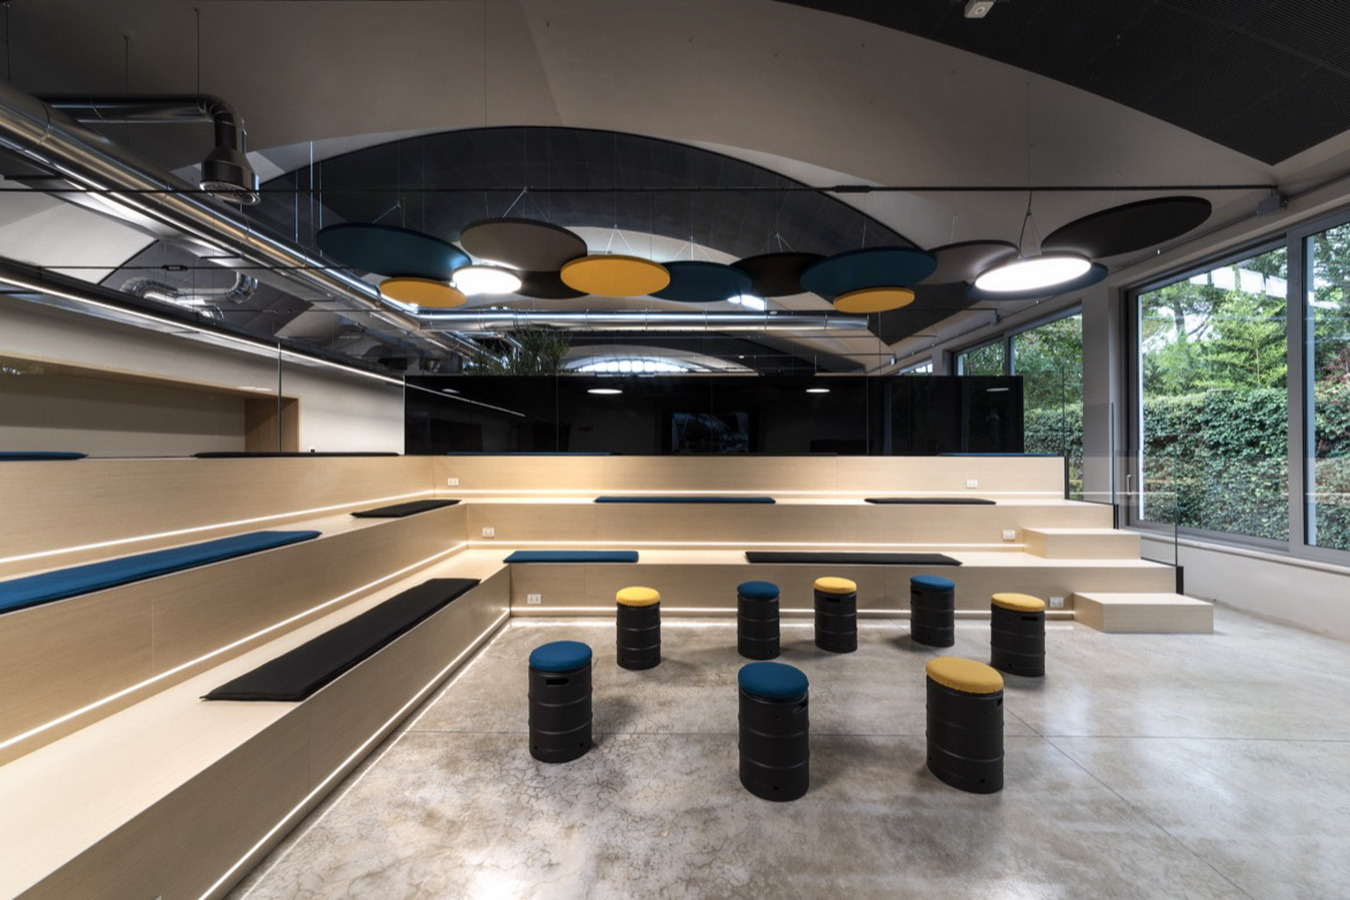 Acoustics-in-event-locations-sound-absorbing-furniture